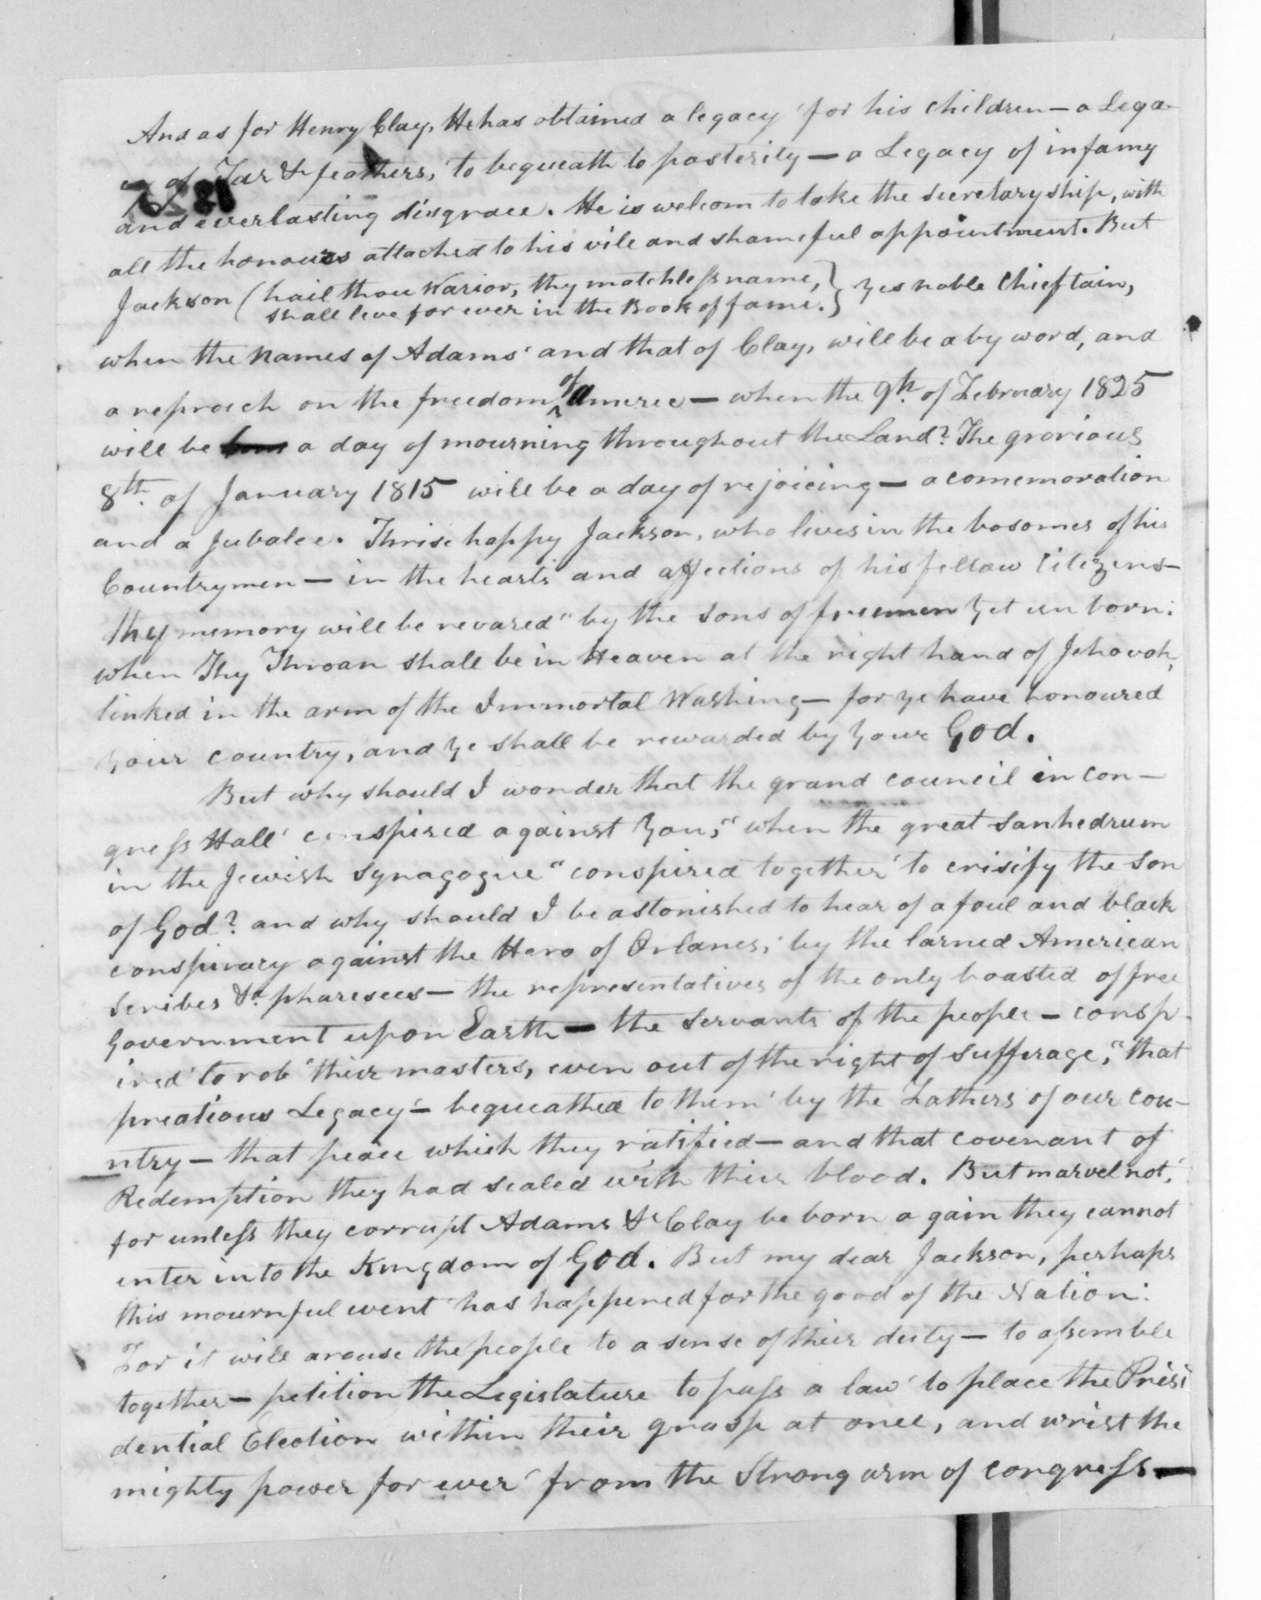 Edward Patchell to Andrew Jackson, March 4, 1825